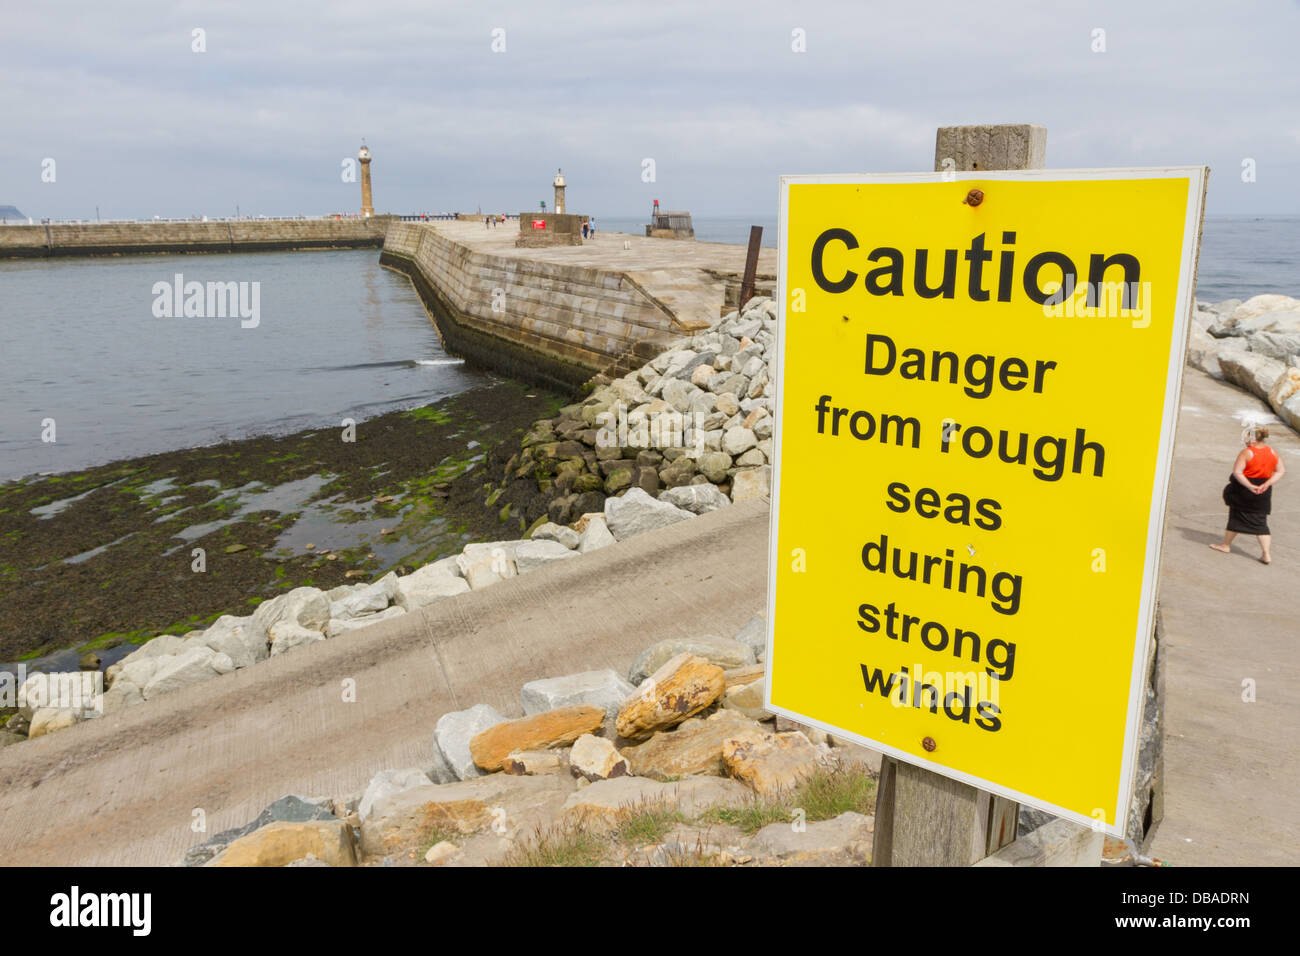 Caution sign about rough seas at Whitby Harbour Wall, North Yorkshire. - Stock Image